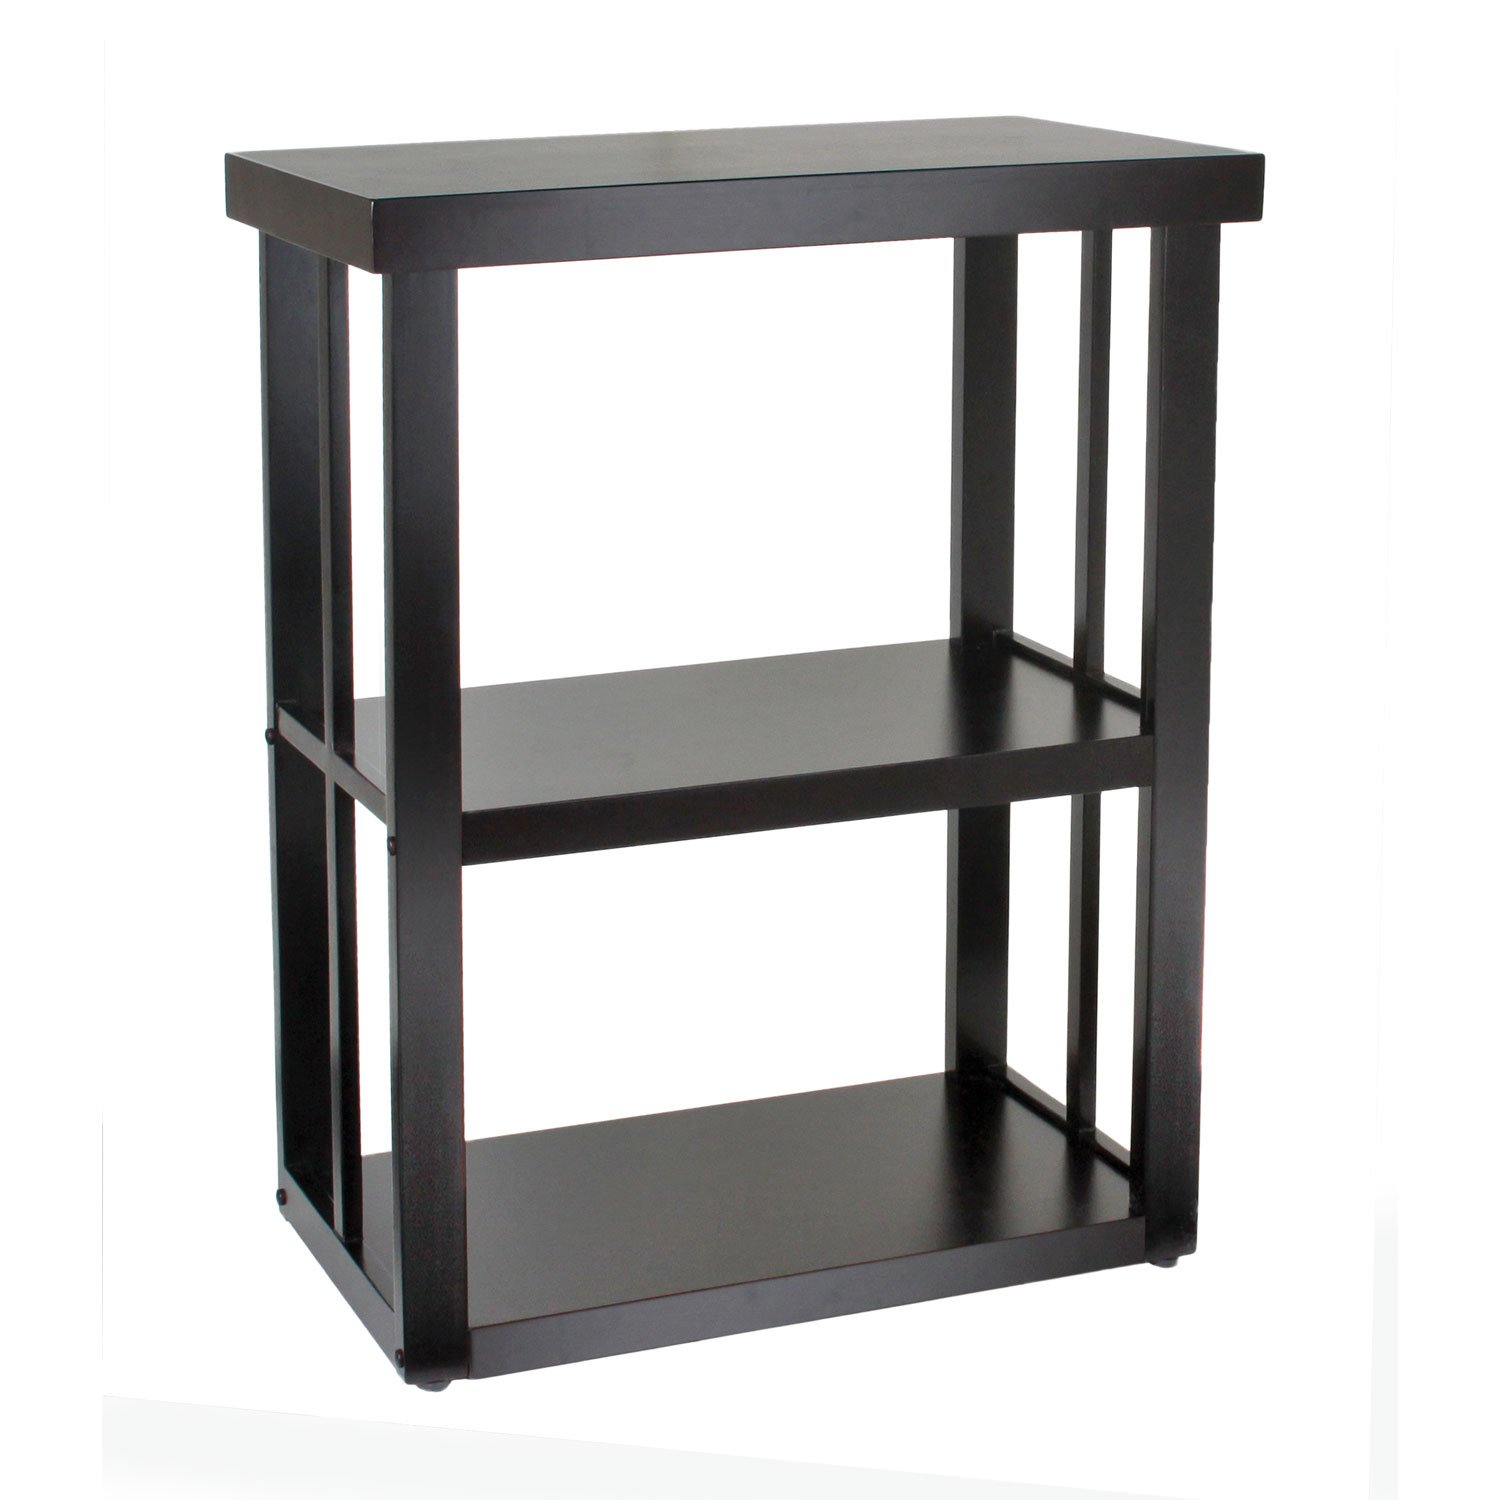 Petco Newport Wooden Tank Stand, 20 Gallons